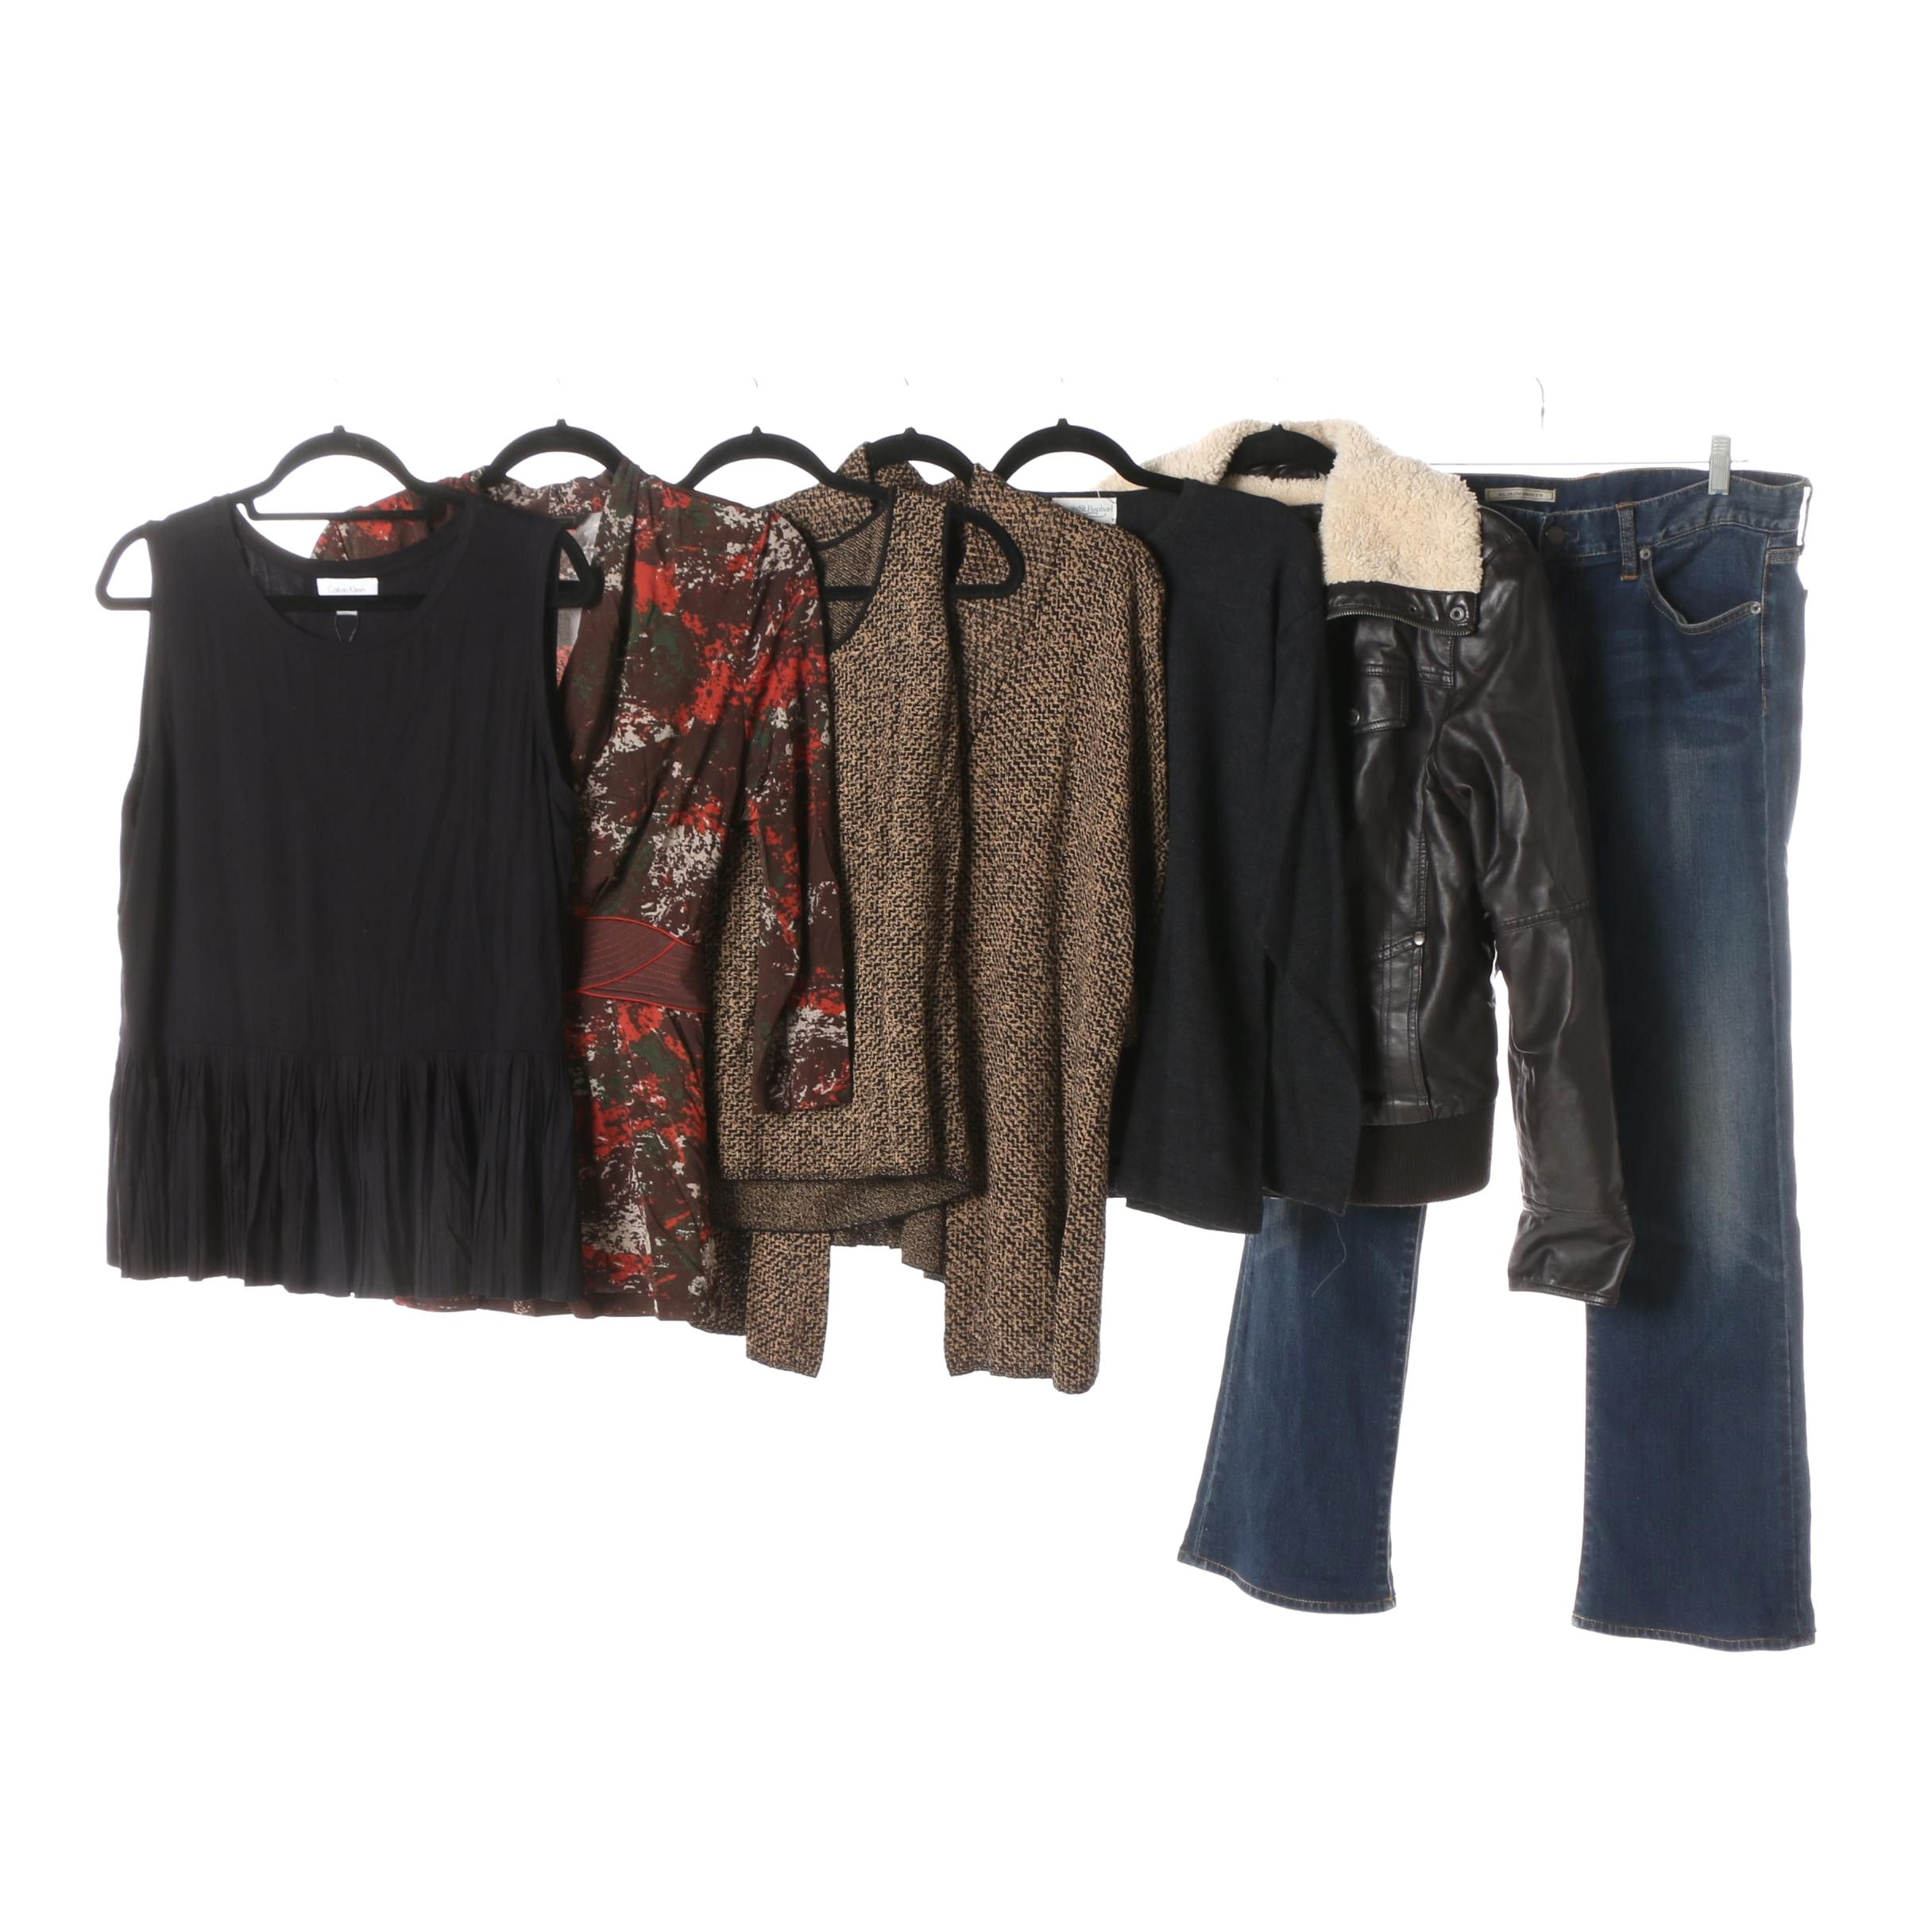 Women's Tops, Jeans and Jacket including Ralph Lauren and Calvin Klein